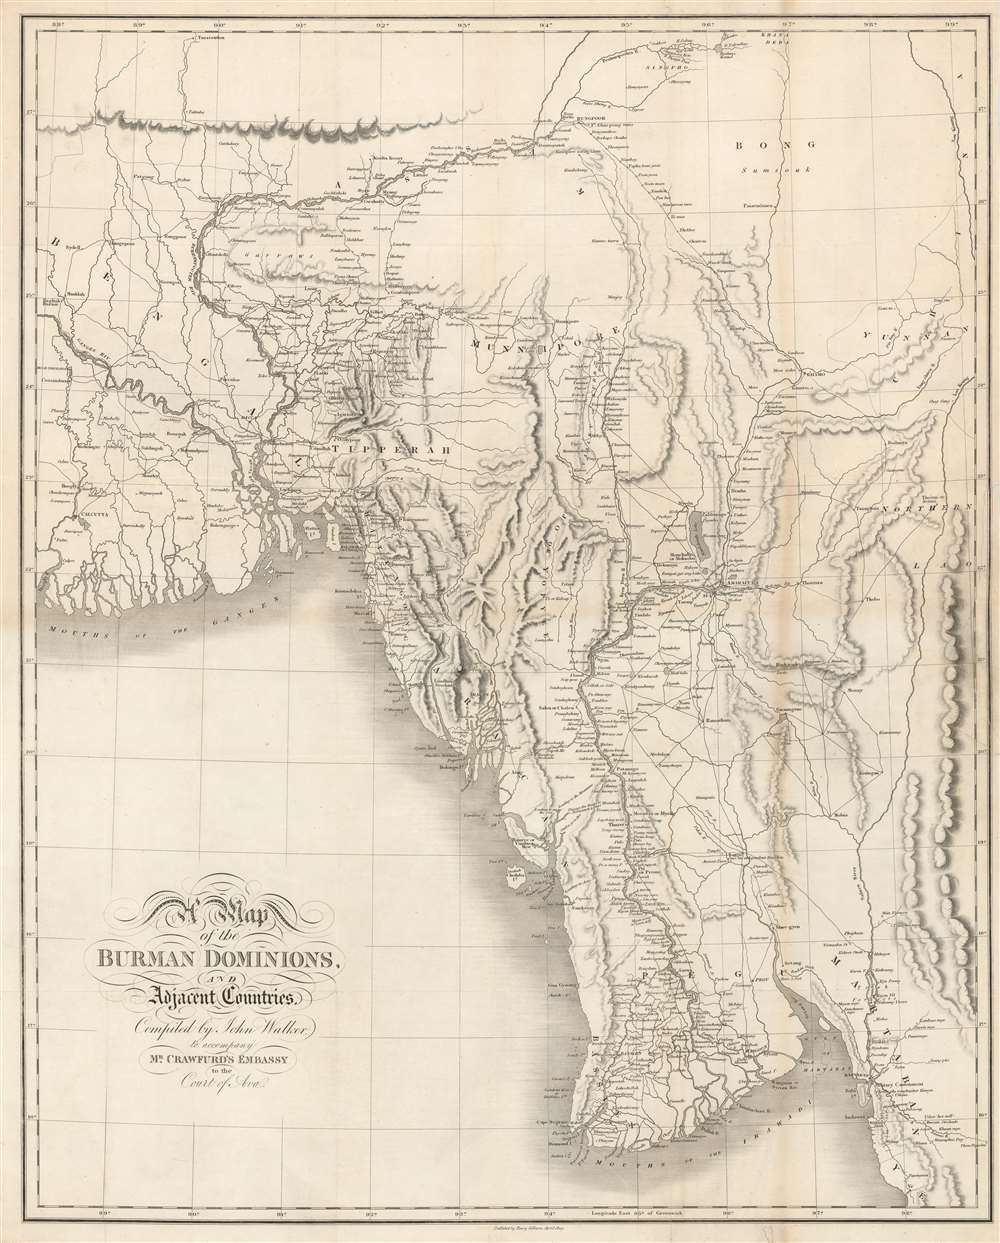 1829 Crawfurd Map of Burma or Myanmar - first accurate map of Burma!